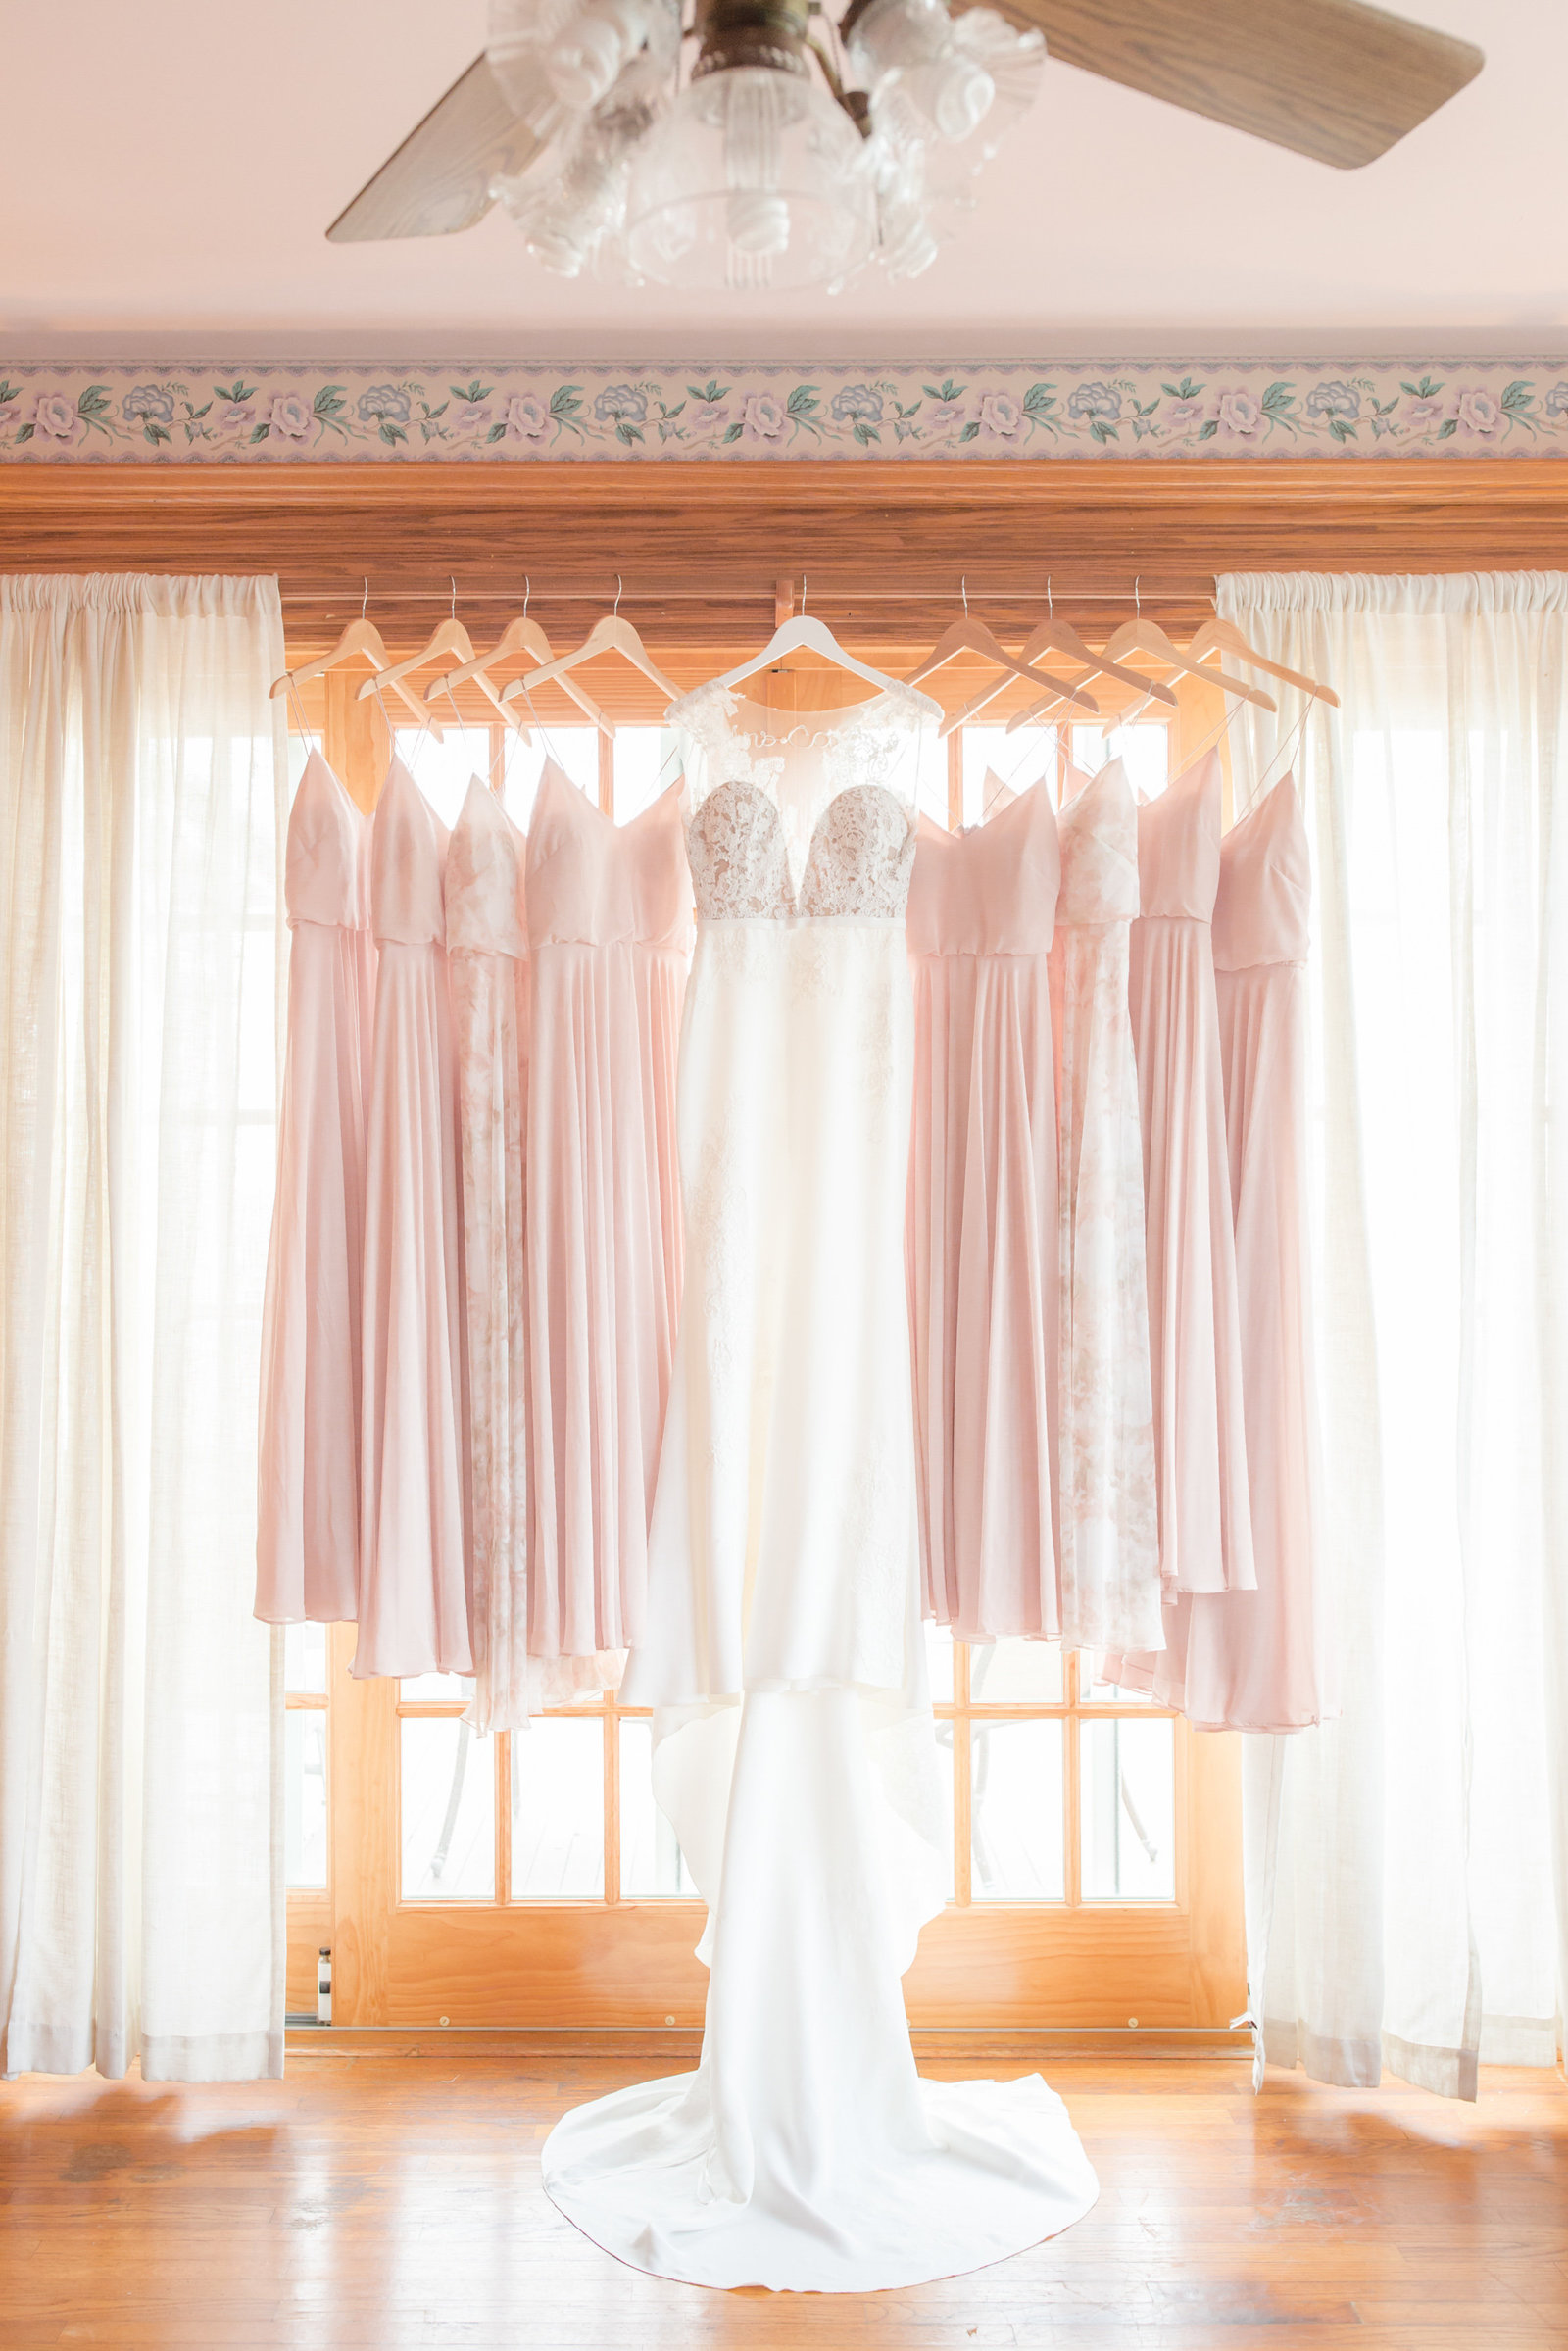 Bride's gown and pink bridesmaid dresses